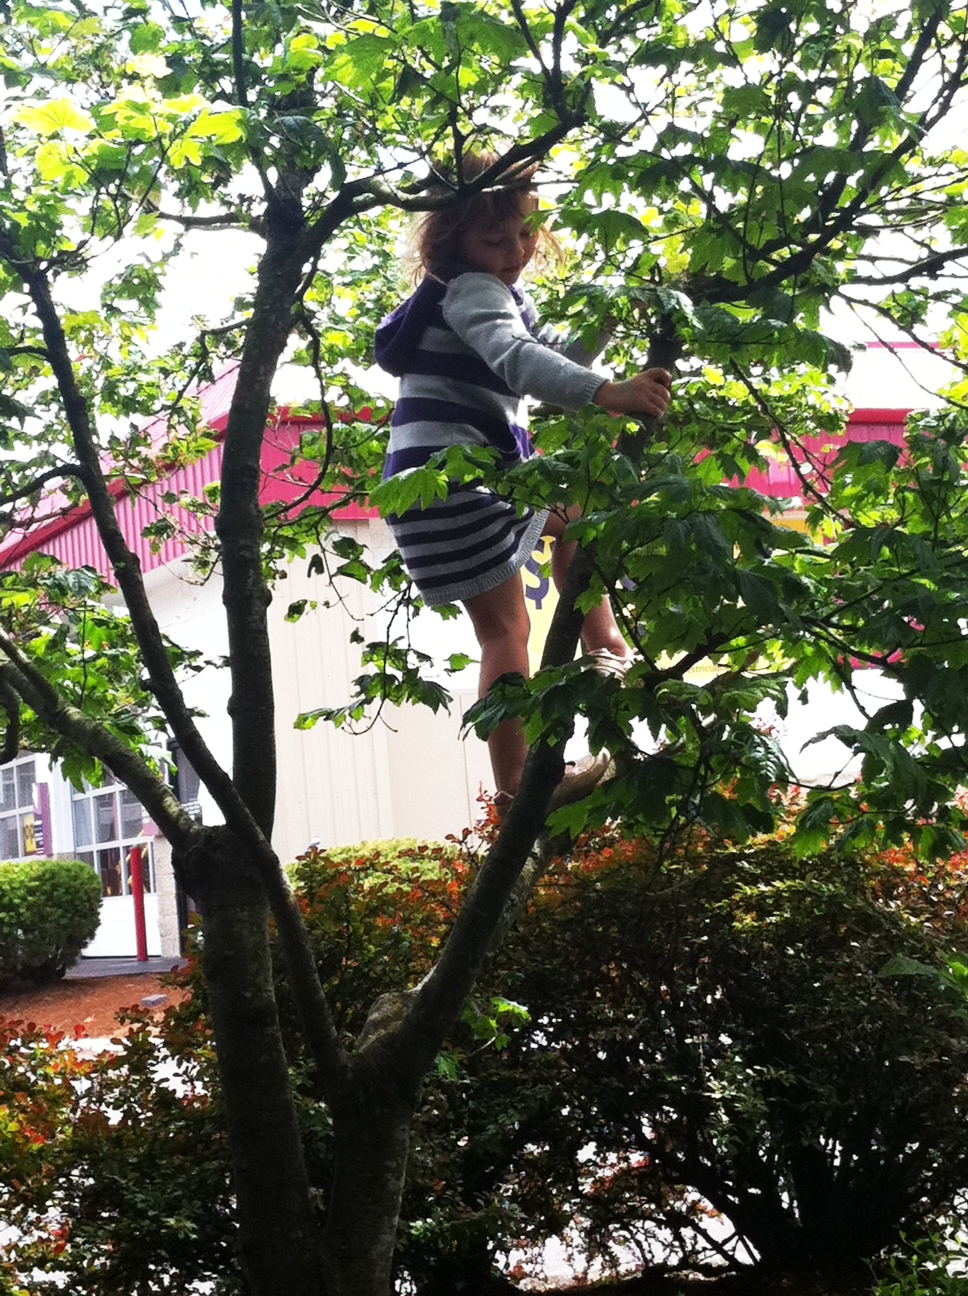 At the car wash, and Evelyn climbs up a tree